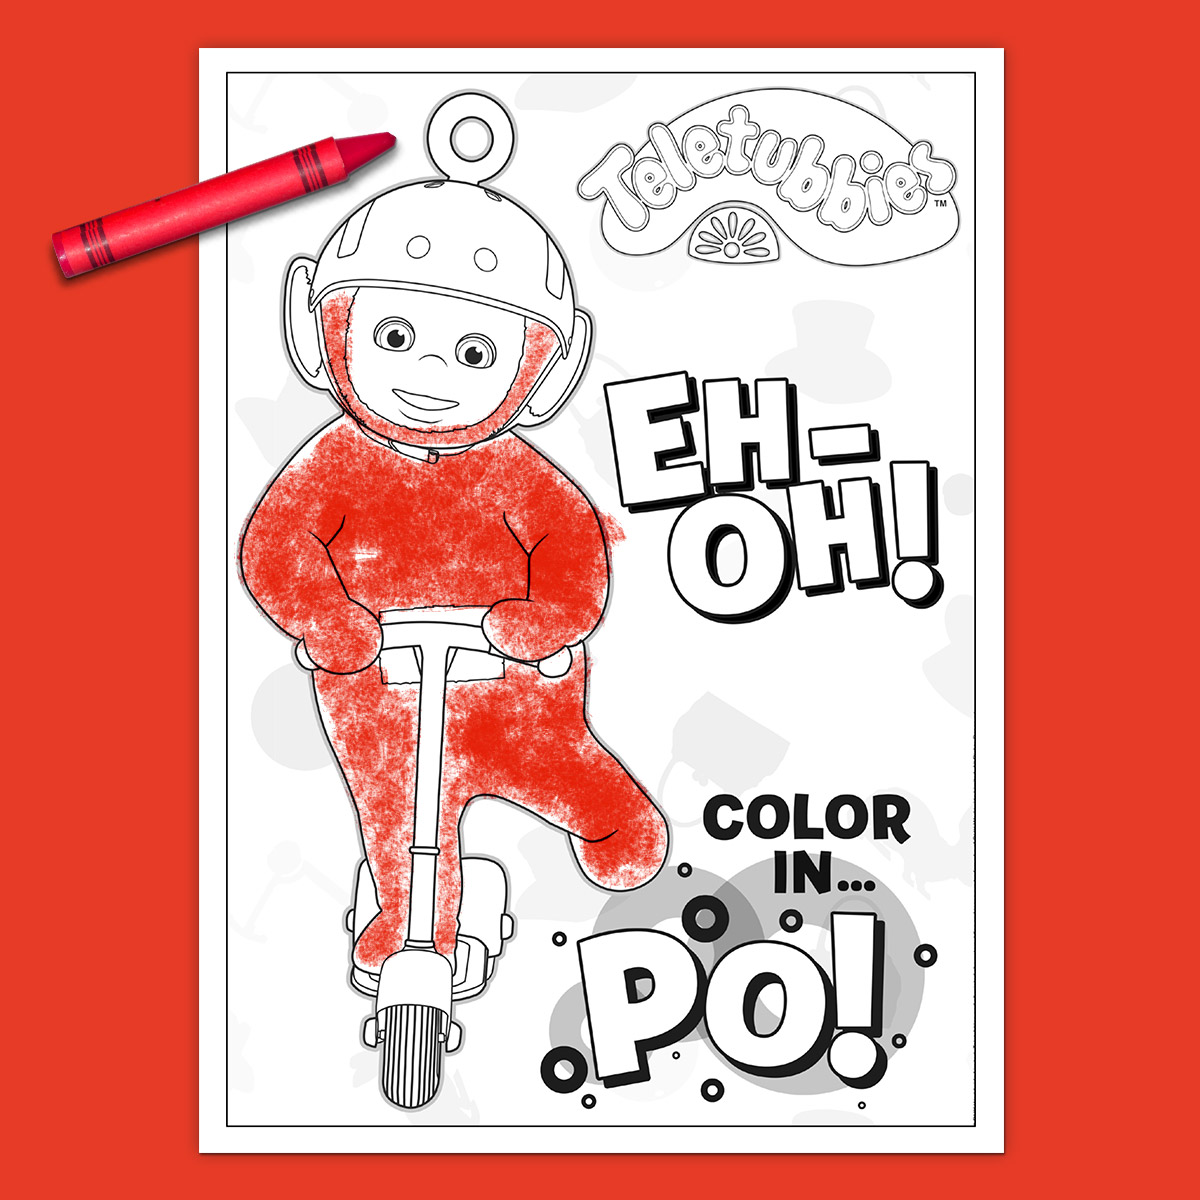 Teletubbies Coloring Page: Po